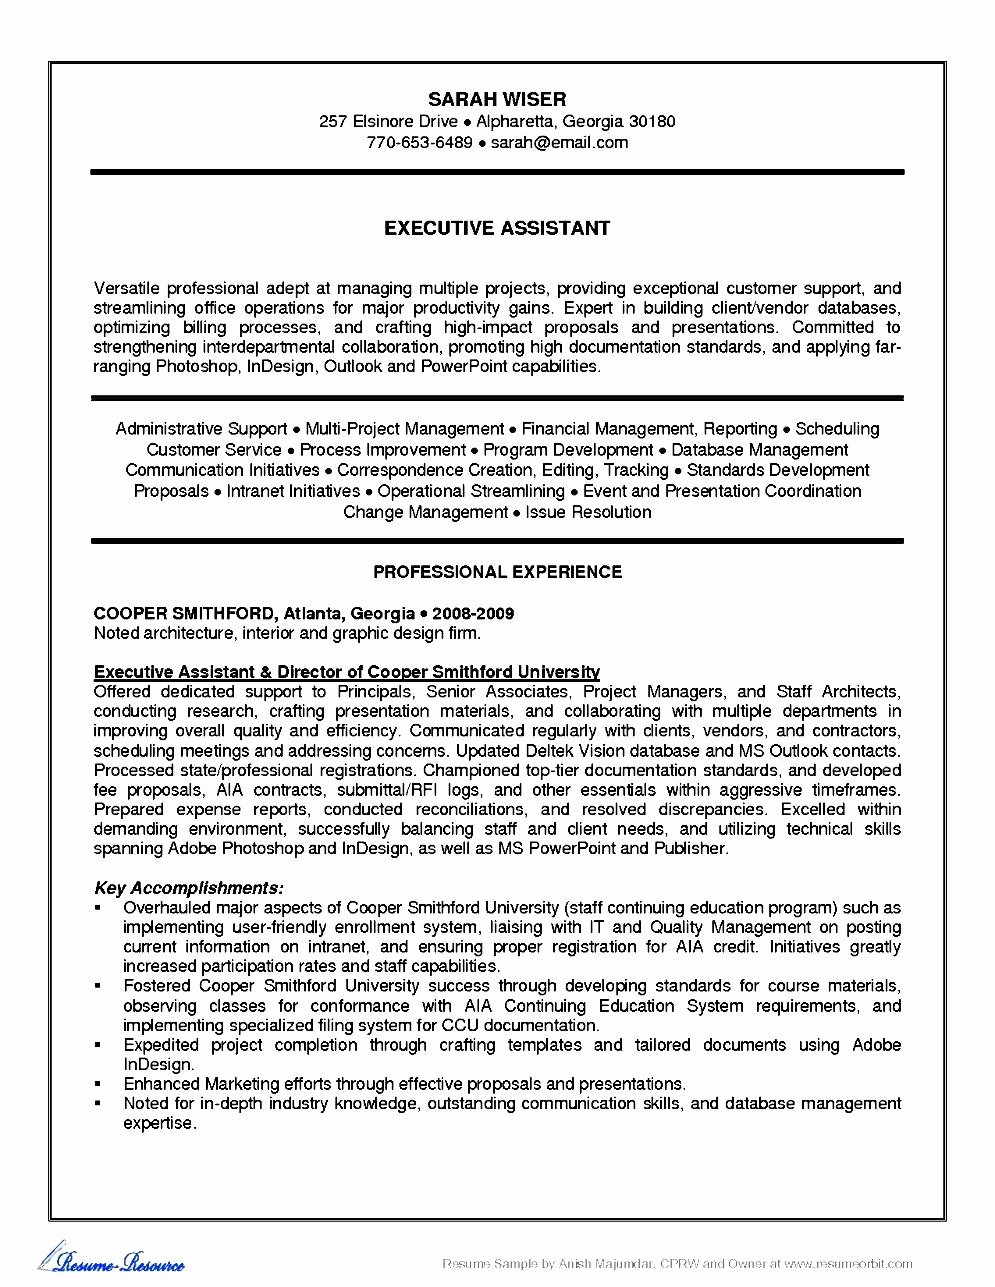 Administrative Executive assistant Resume Free Samples